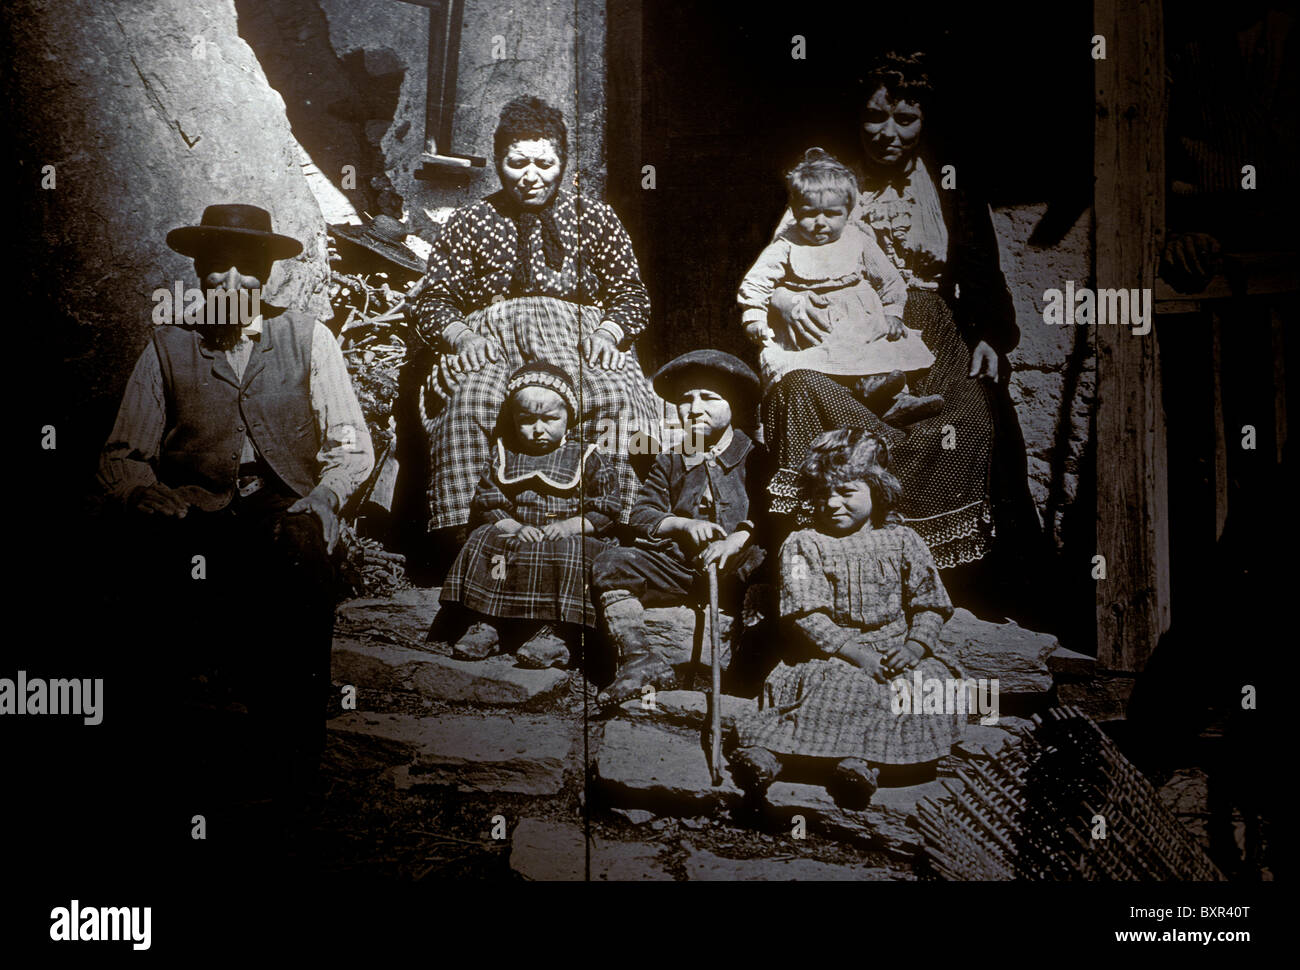 Historical photograph of Italian immigrants Dauphinois Museum city of Grenoble Rhone-Alpes France Europe - Stock Image